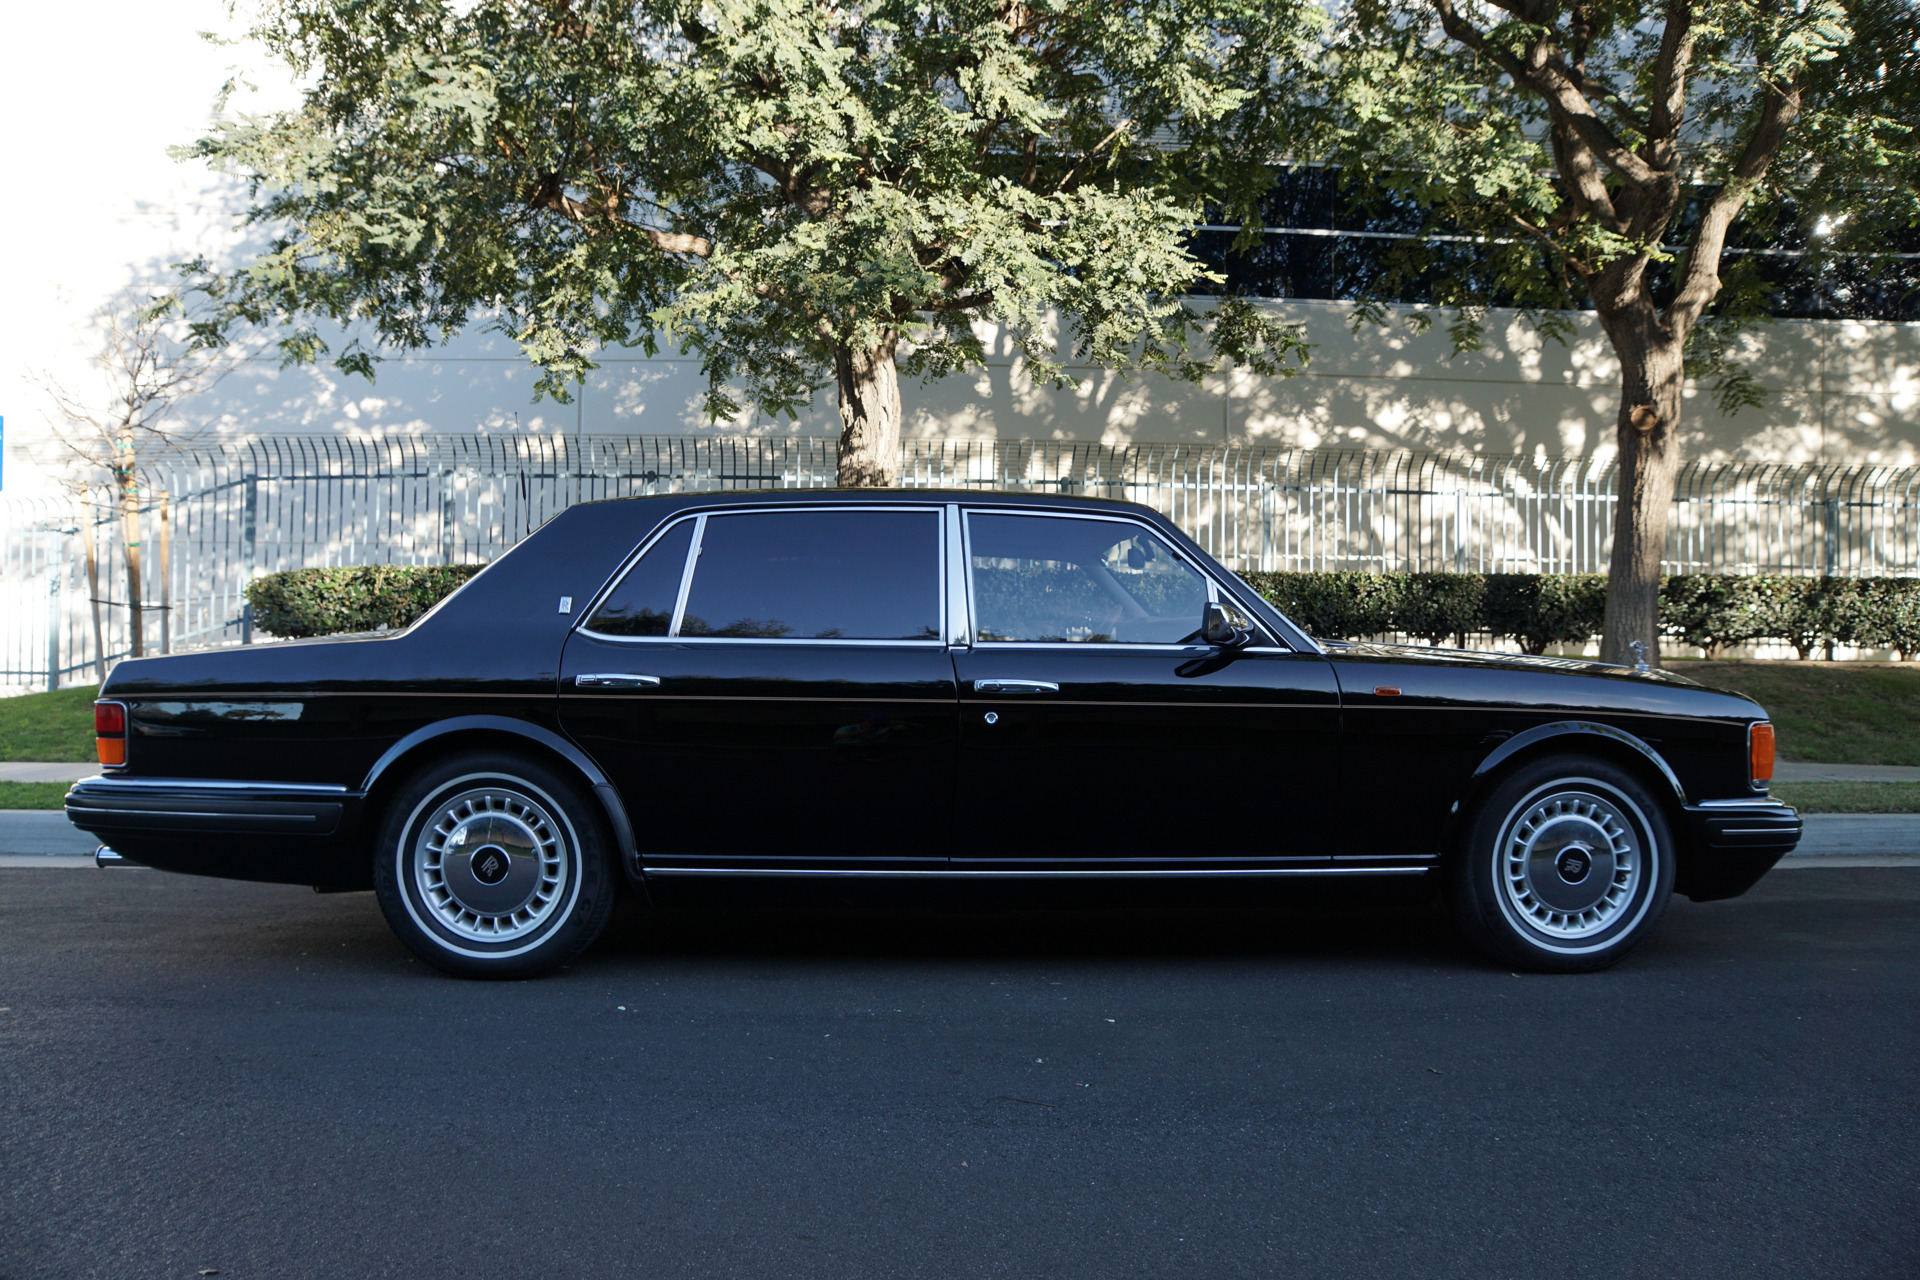 1997 Rolls-Royce Silver Spur IV Stock # 159 for sale near ...